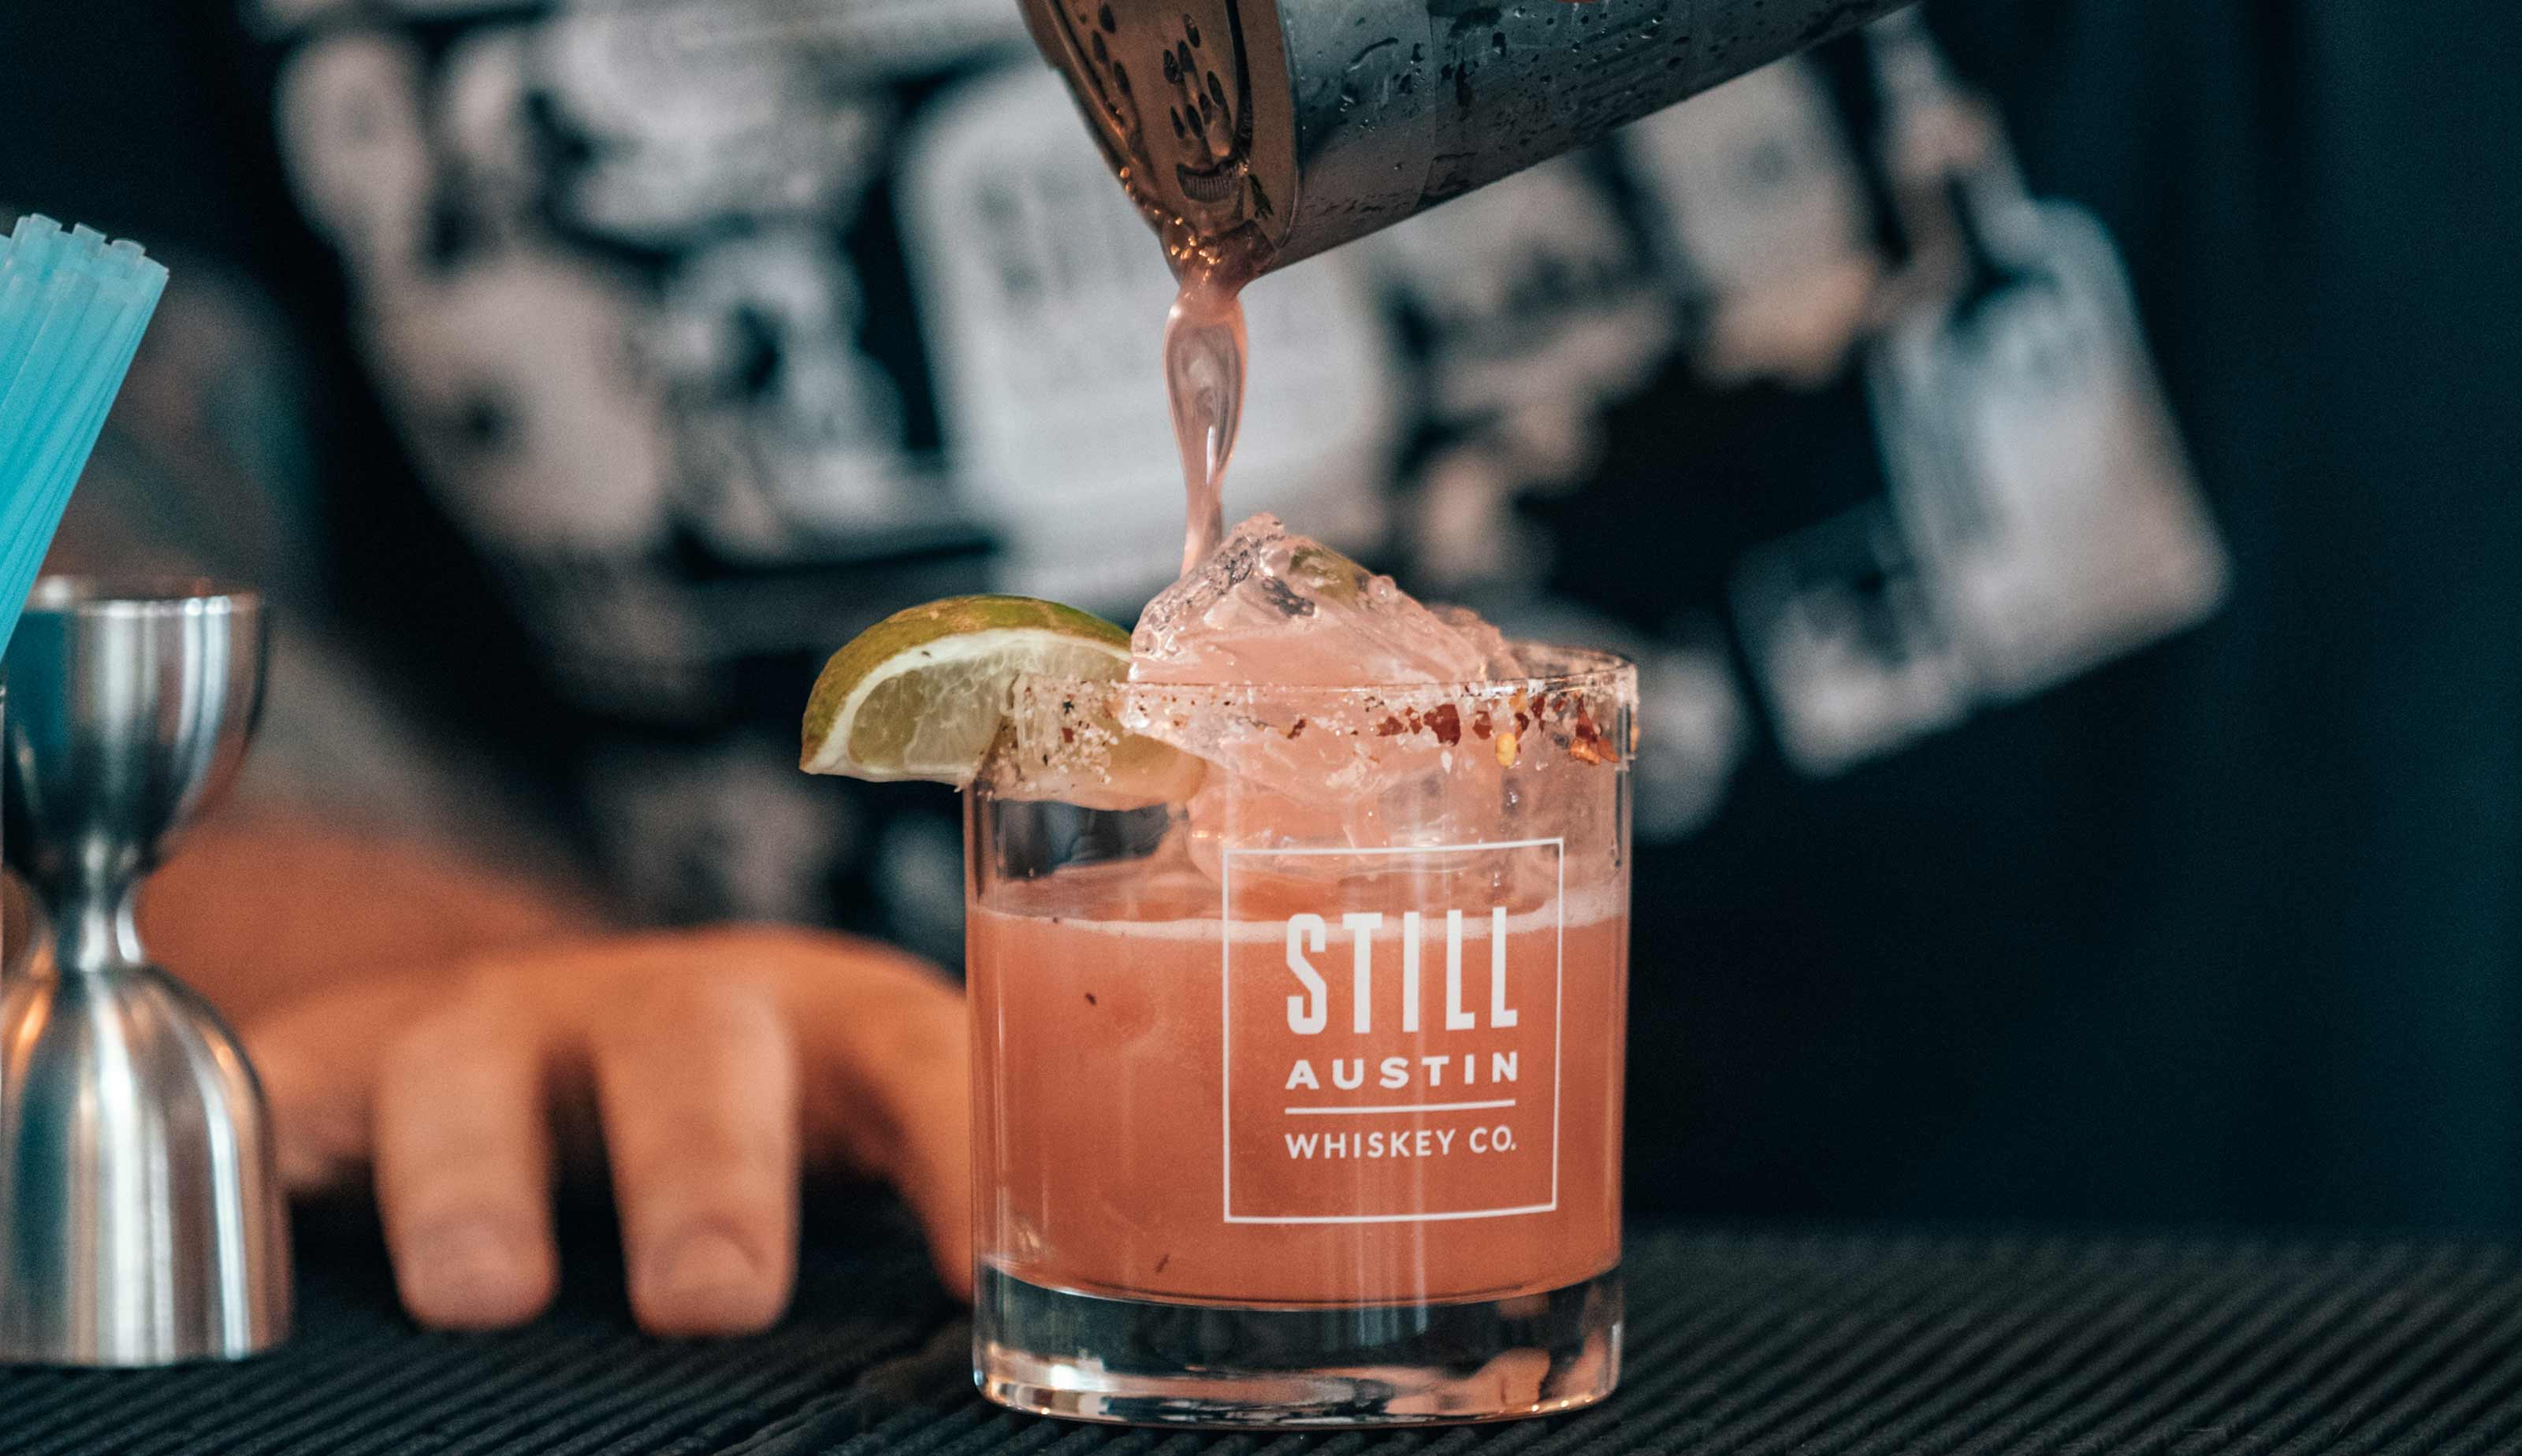 craft your own cocktails class at still austin whiskey co. in austin, tx